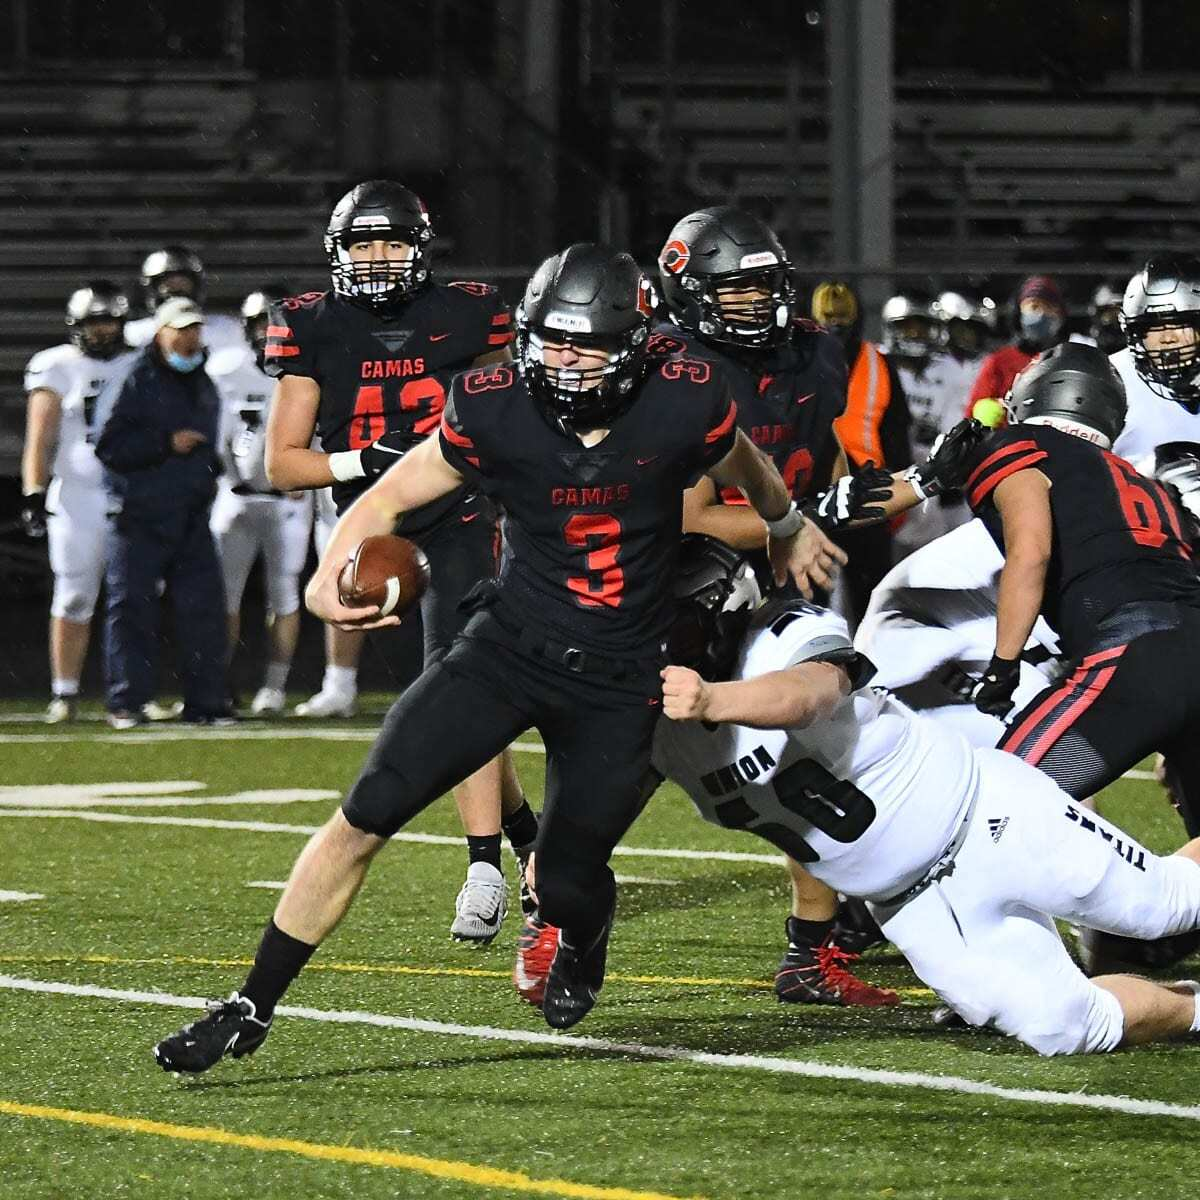 Jake Blair said he takes pride in representing not just his team but the community as the quarterback at Camas. Photo courtesy Kris Cavin